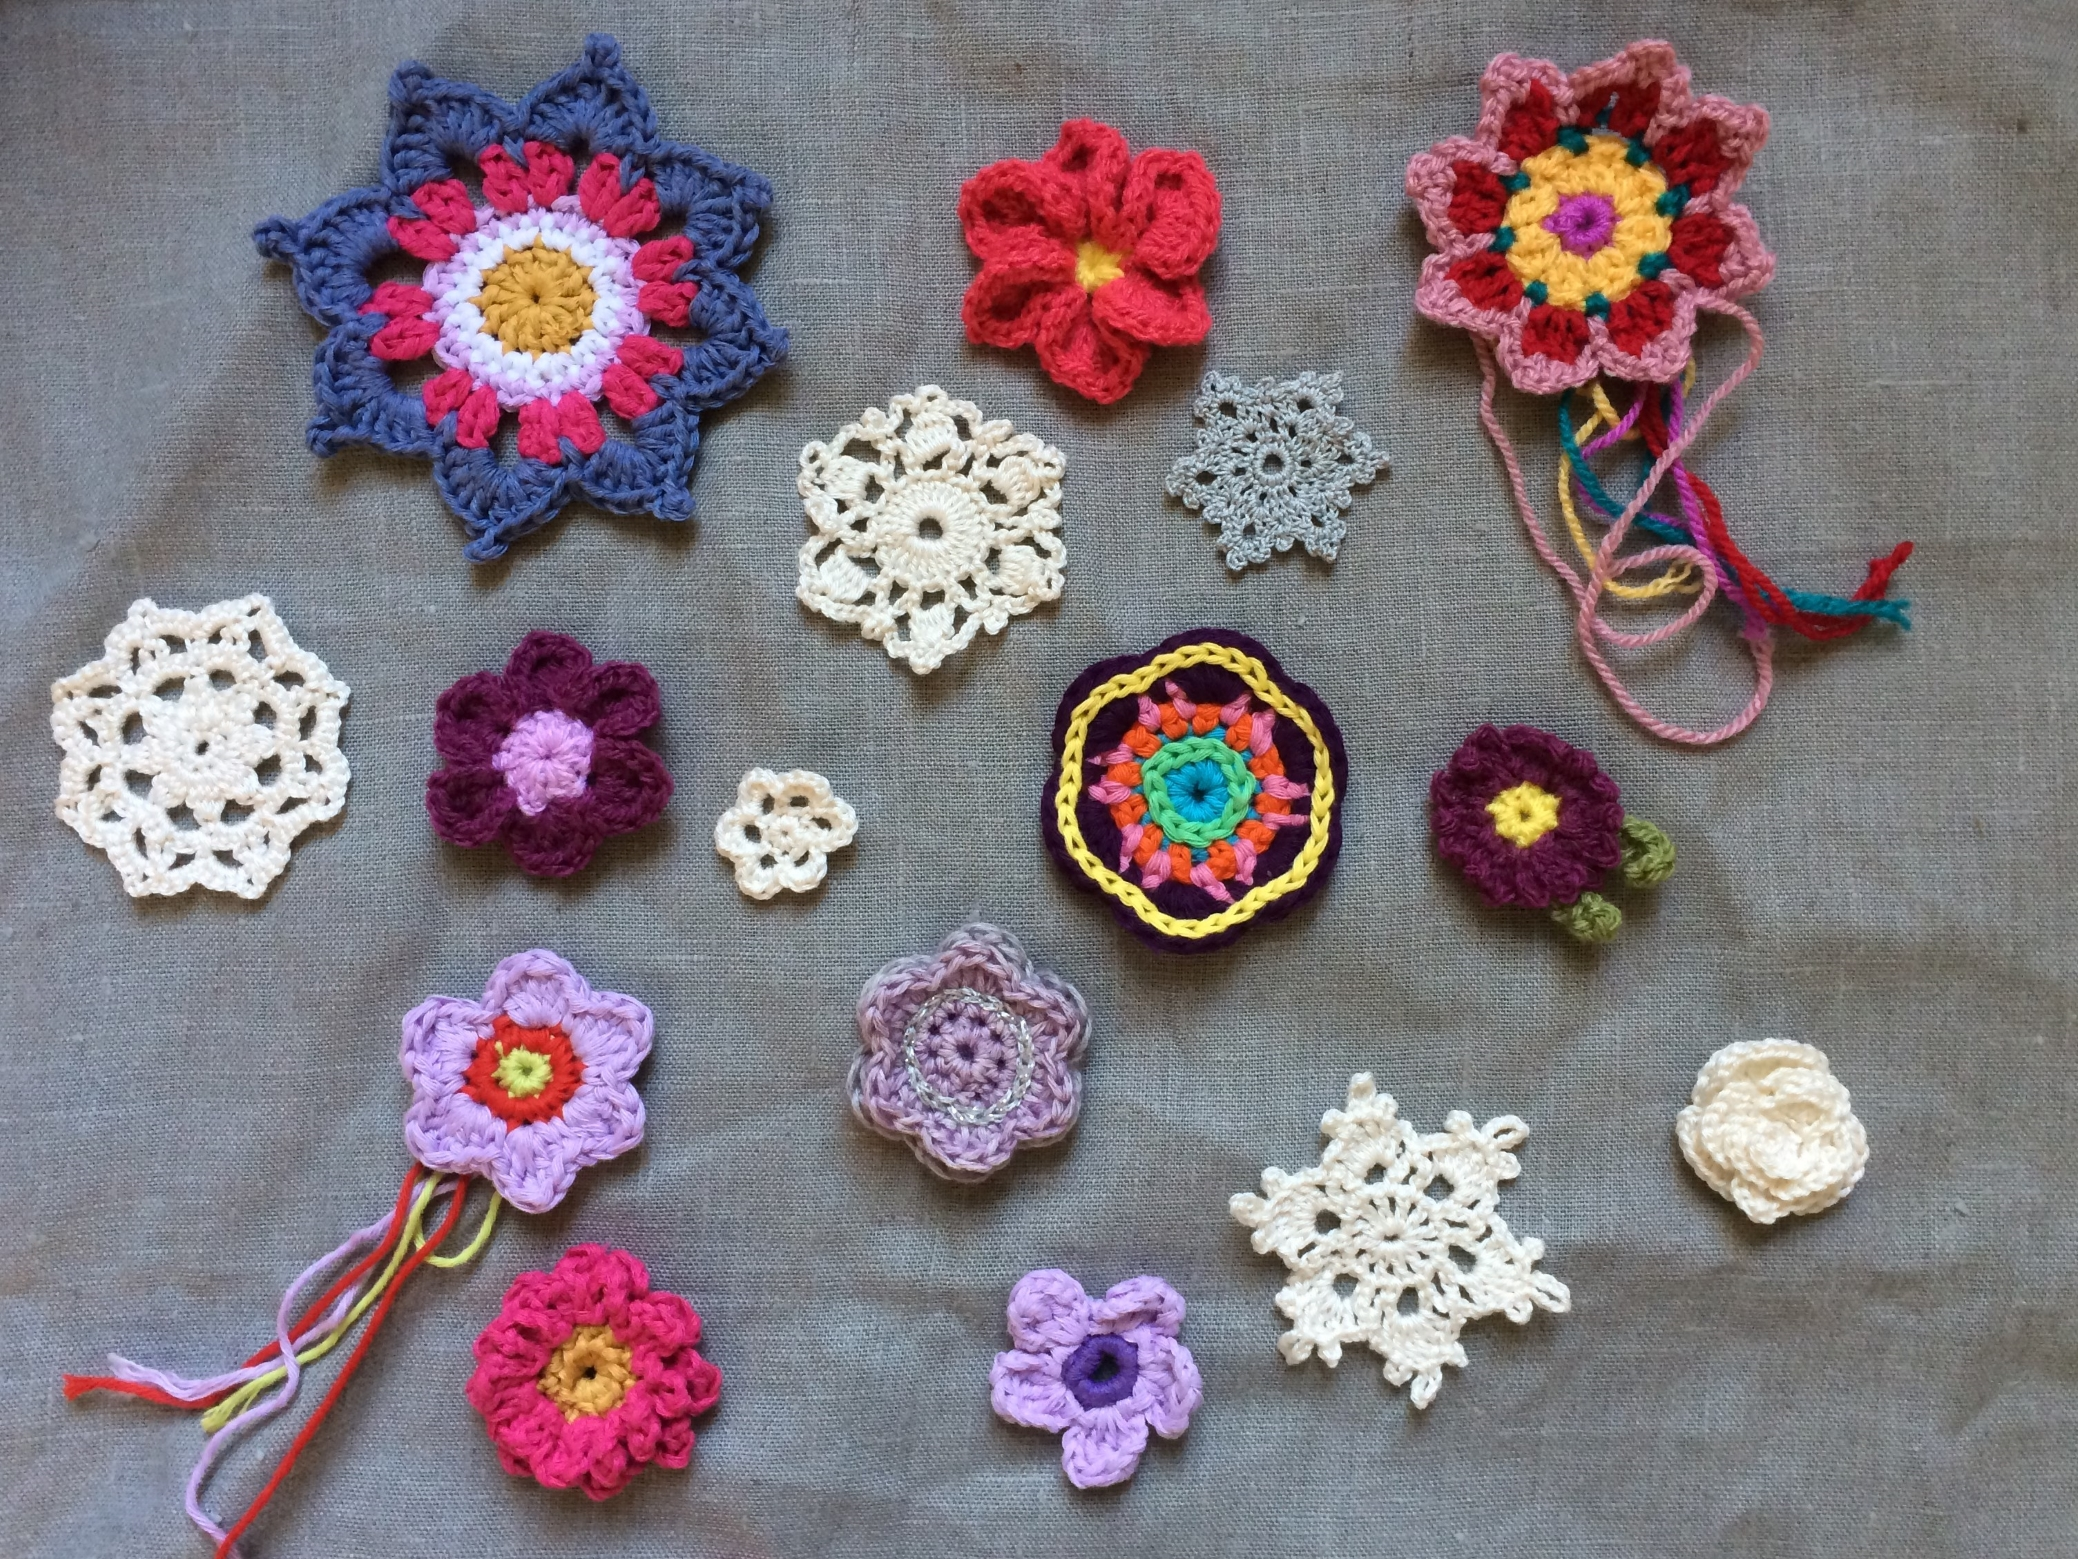 Crochet Flowers | MyCraftyMusings